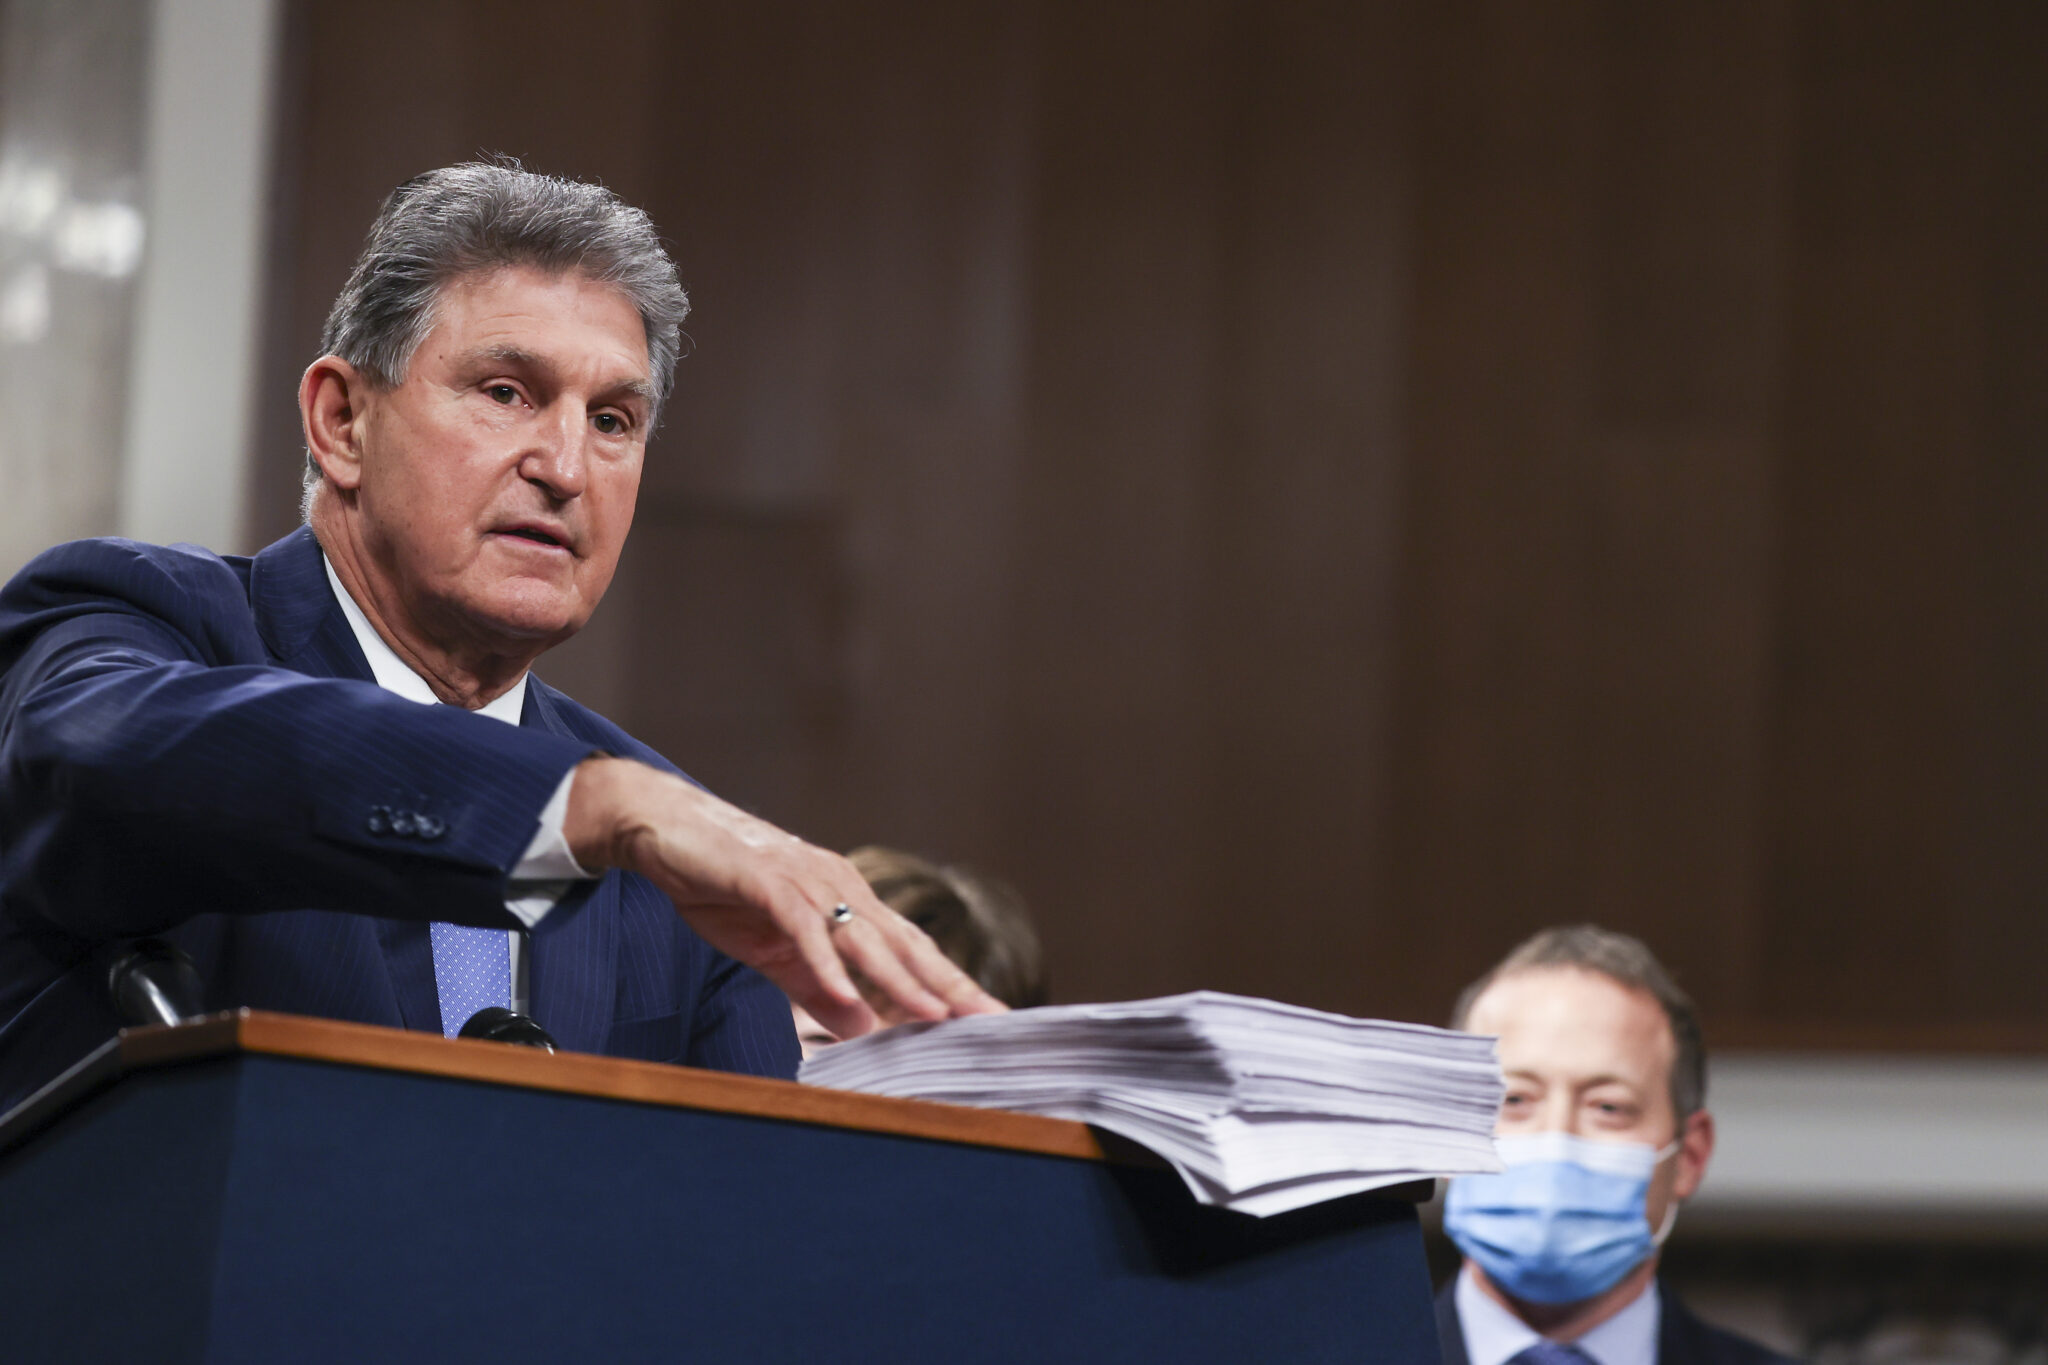 Sen. Joe Manchin (D-W.V.) speaks alongside a bipartisan group of Democrat and Republican members of Congress as they announce a proposal for a Covid-19 relief bill on Capitol Hill on Dec. 14, 2020 in Washington, D.C. Credit: Tasos Katopodis/Getty Images